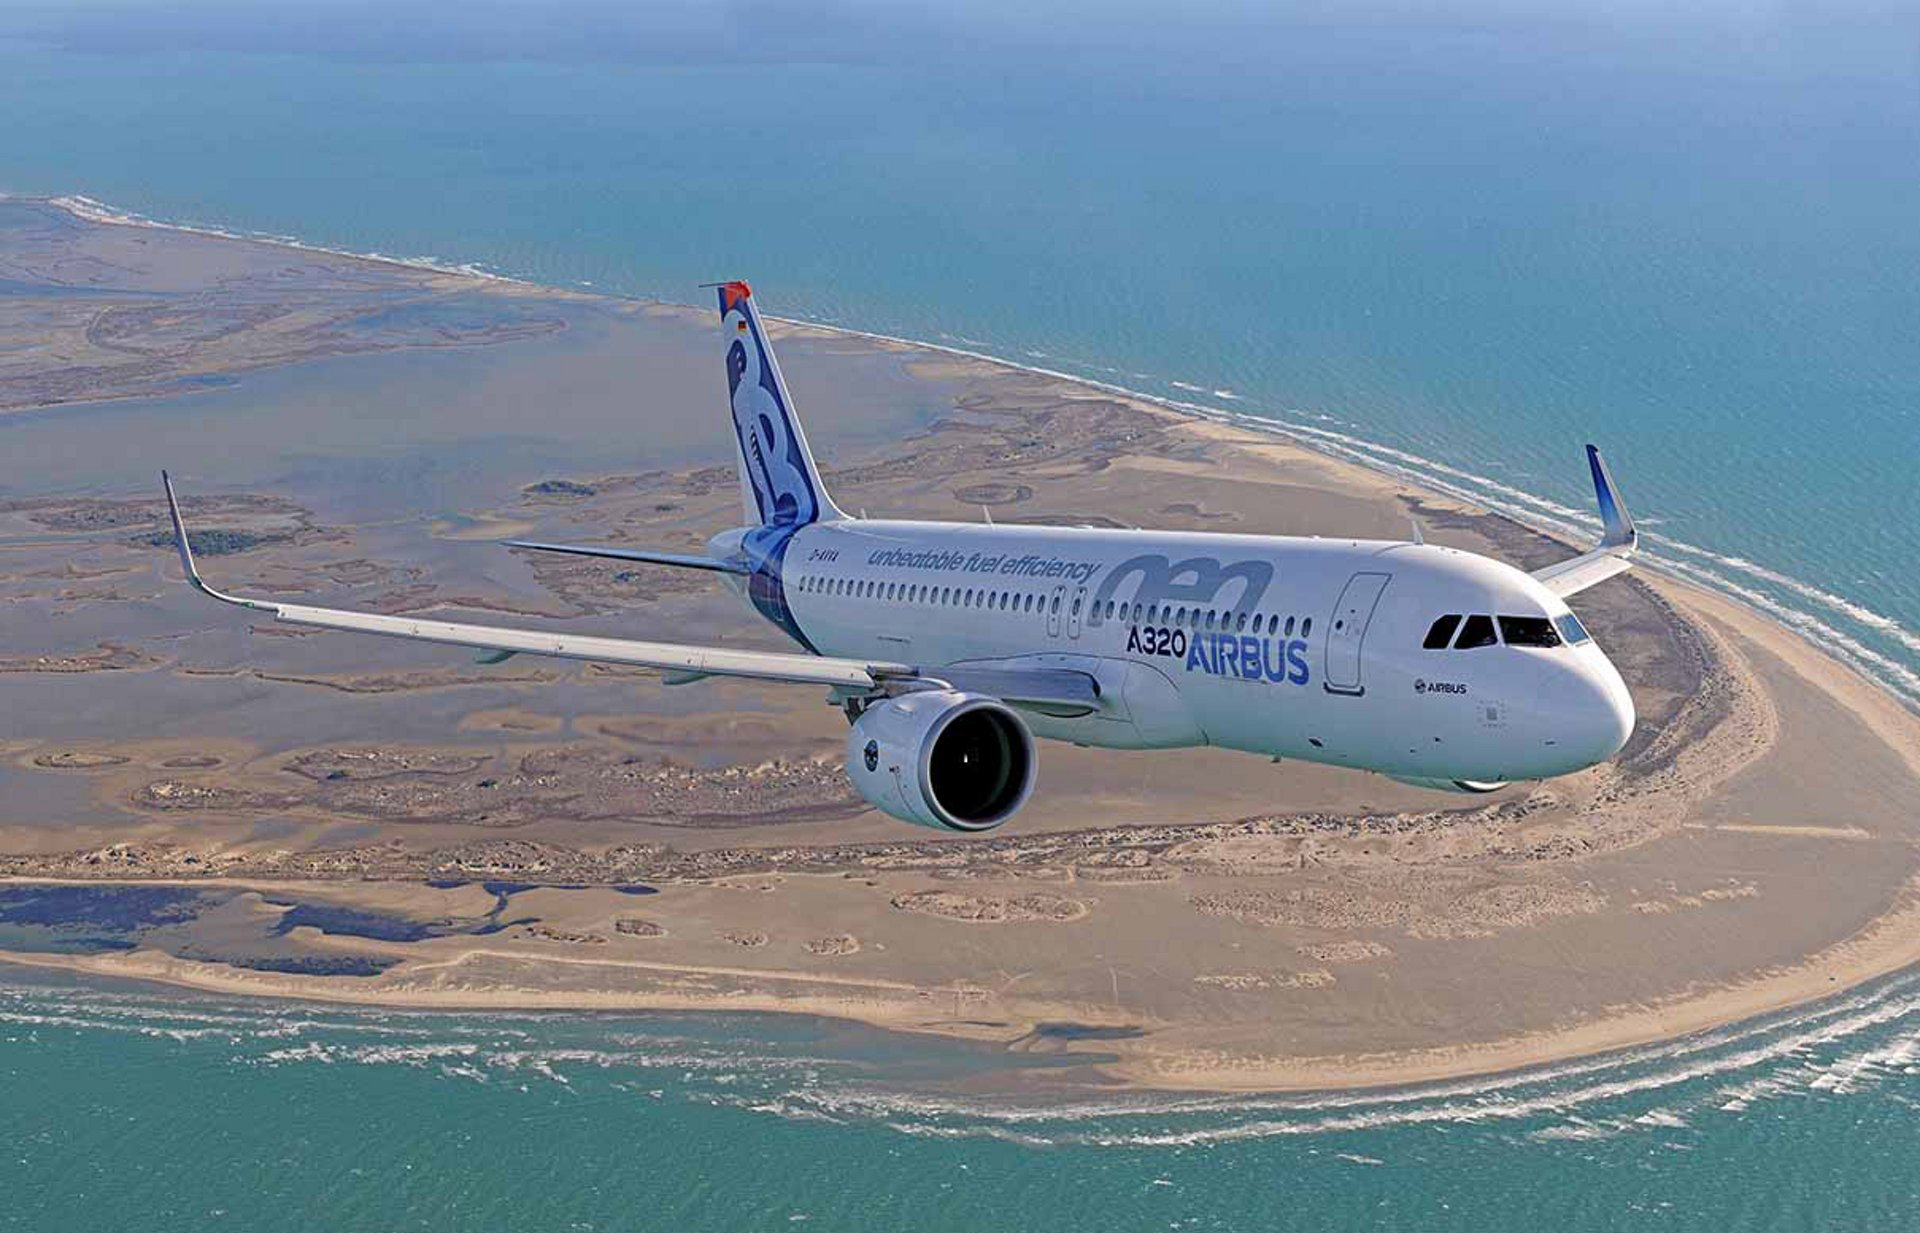 Figure 1: An Airbus A320neo, from the world's most advanced and fuel-efficient single-aisle aircraft family.